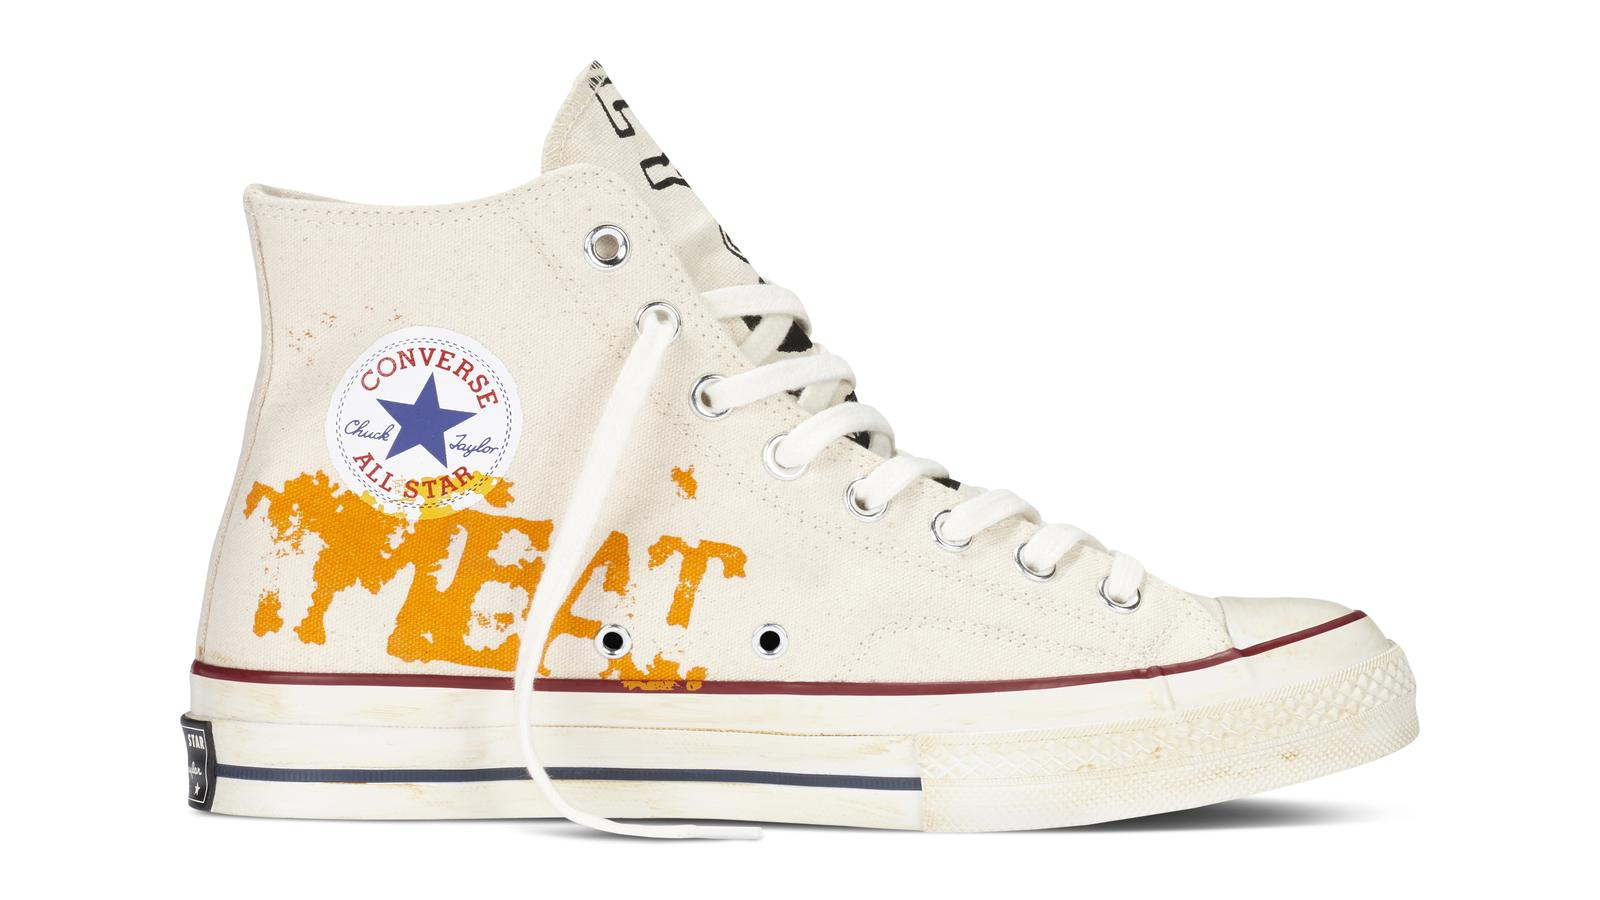 0c84f3654f01 CONVERSE UNVEILS LIMITED EDITION ANDY WARHOL SNEAKER - Nike News